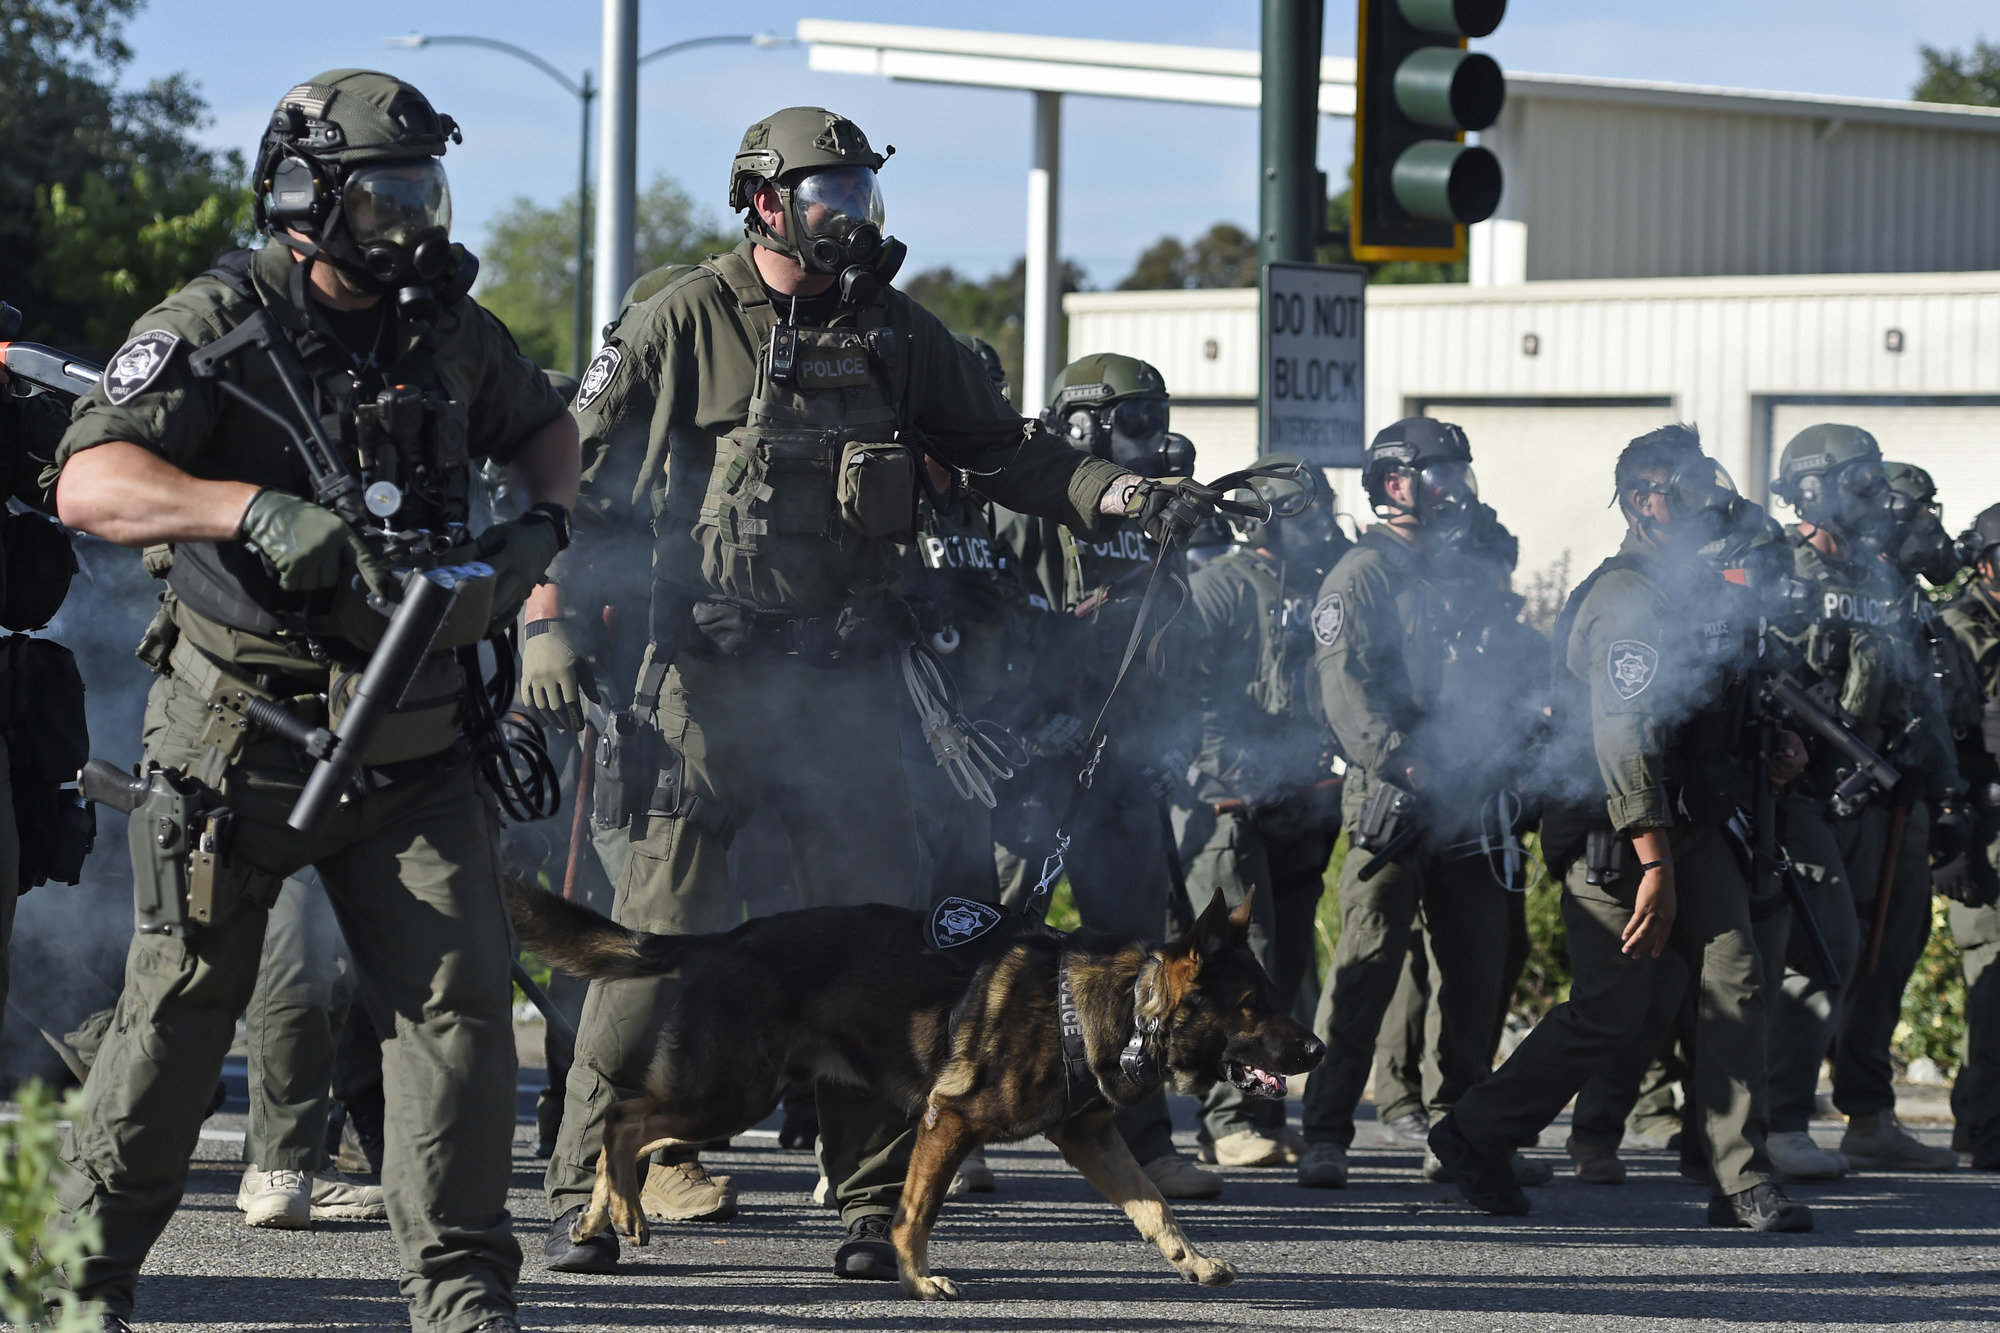 Officers with a police dog approached protesters after they marched onto the I-680 freeway during a Black Lives Matter demonstration in Walnut Creek, California, on June 1.